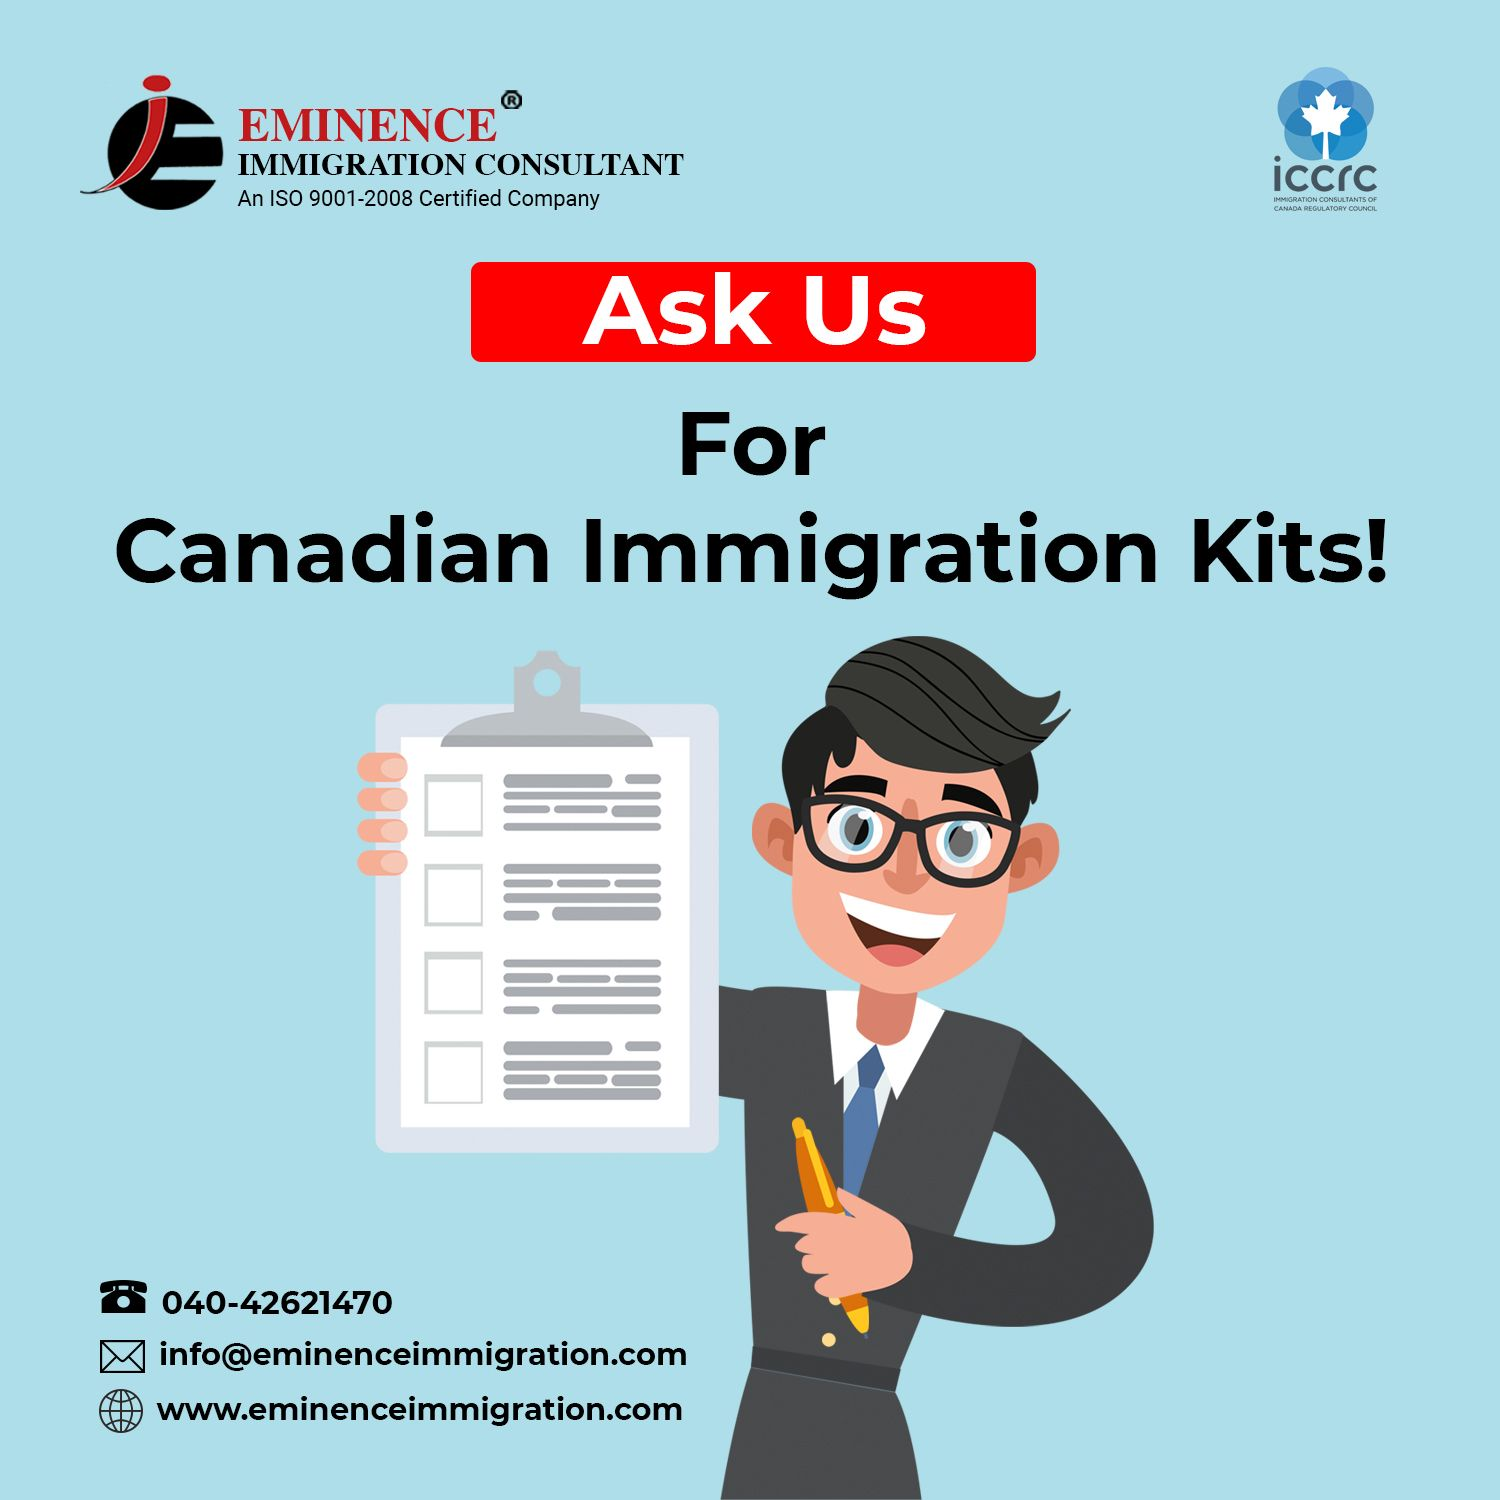 Immigrate to Canada is your favourite destination place